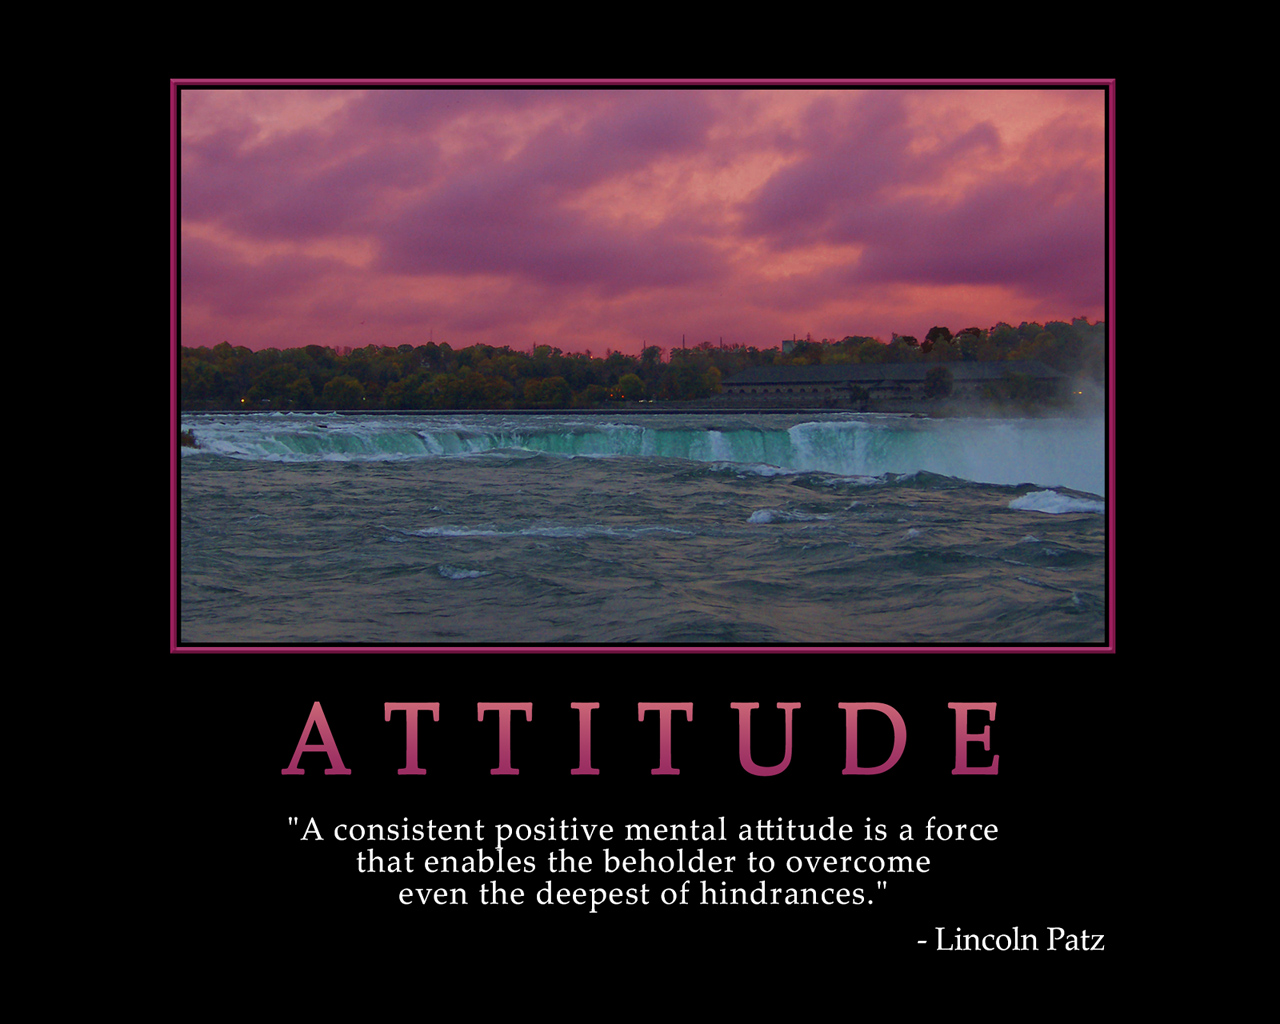 Consistent Positive Mental Attitude Force That Enables The